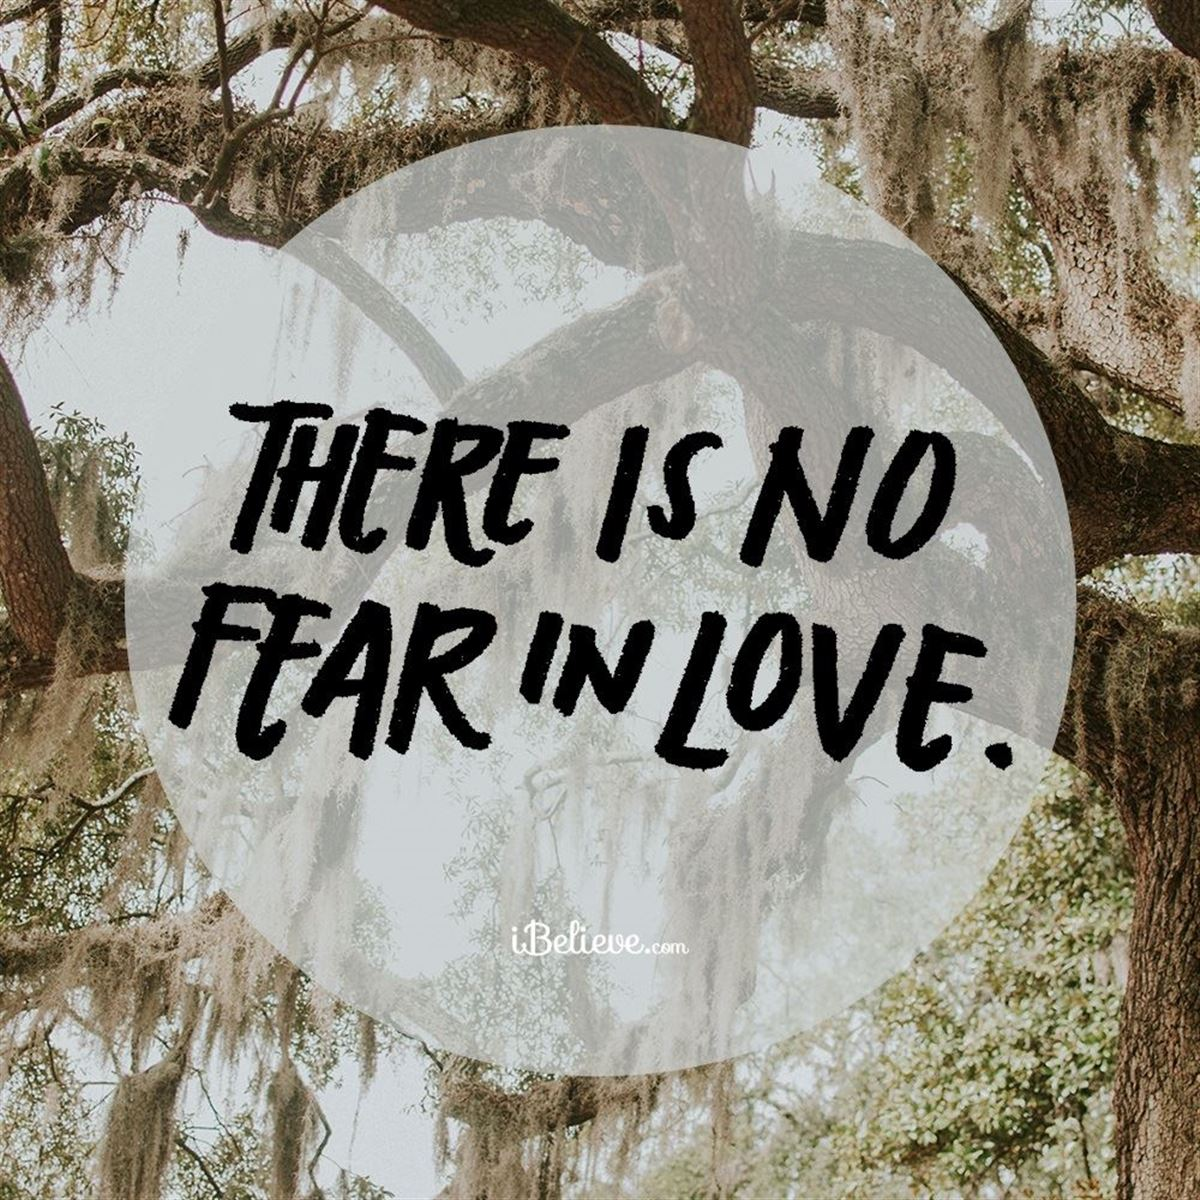 40 Bible Verses About Fear - Encouraging Scripture Quotes